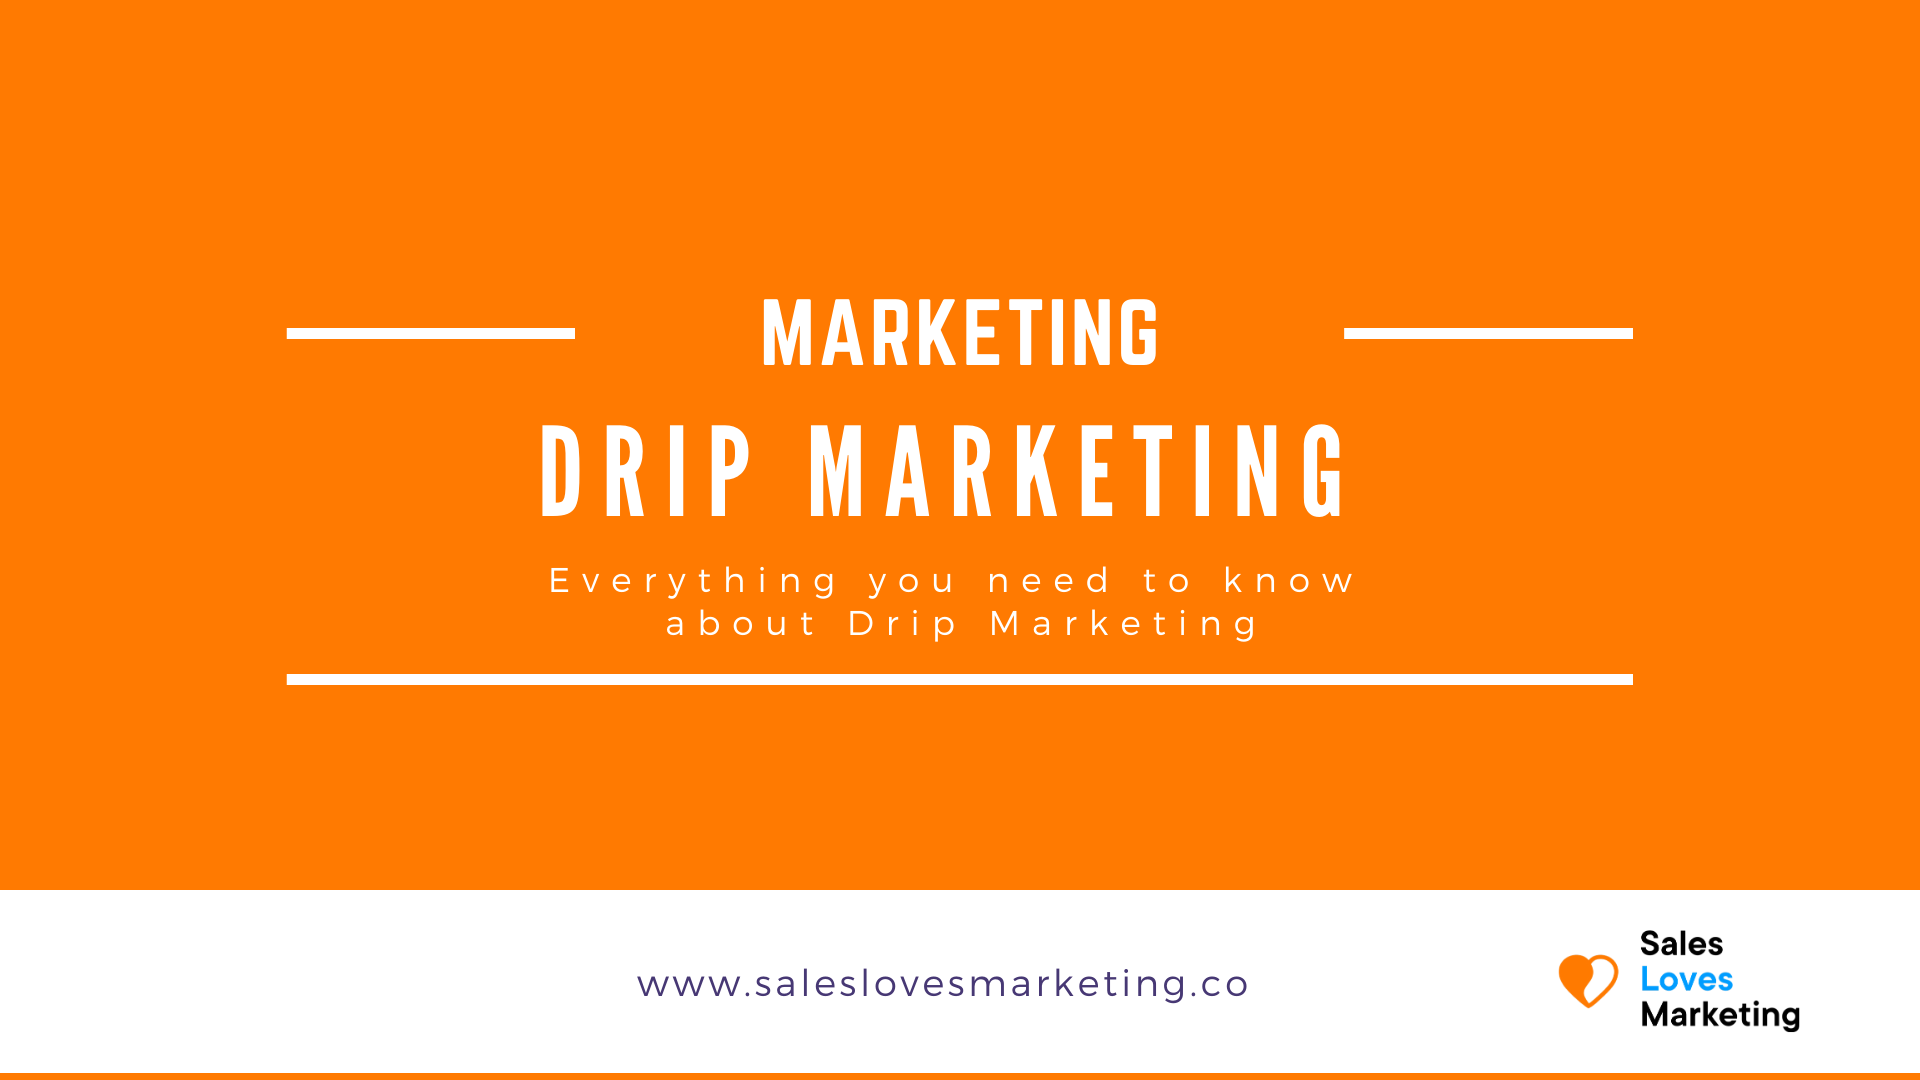 Everything you need to know about drip marketing and more